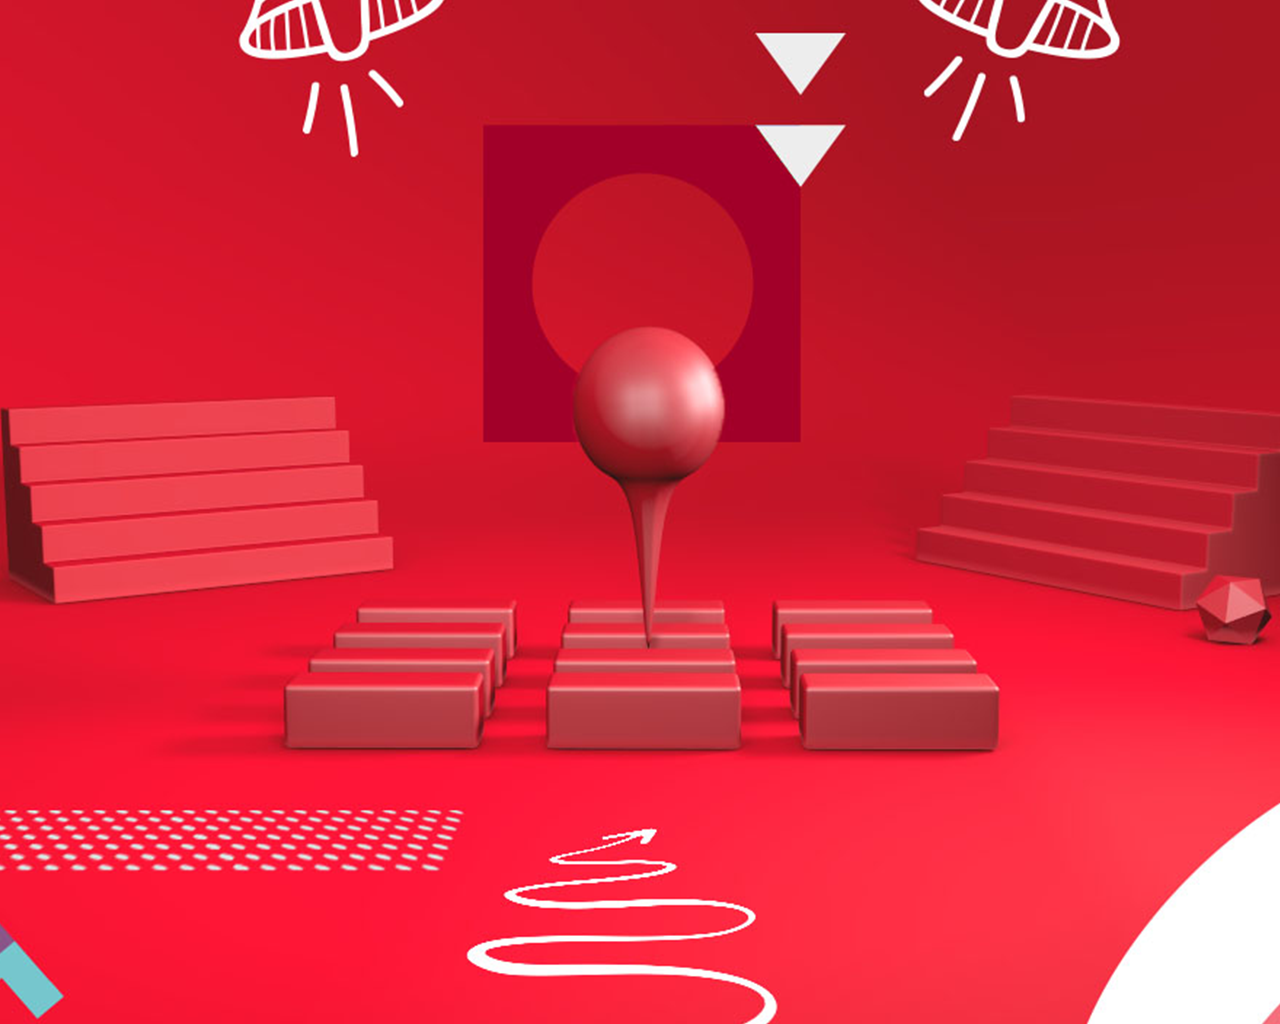 Abstract scene of red 3d shapes making up a conference stage